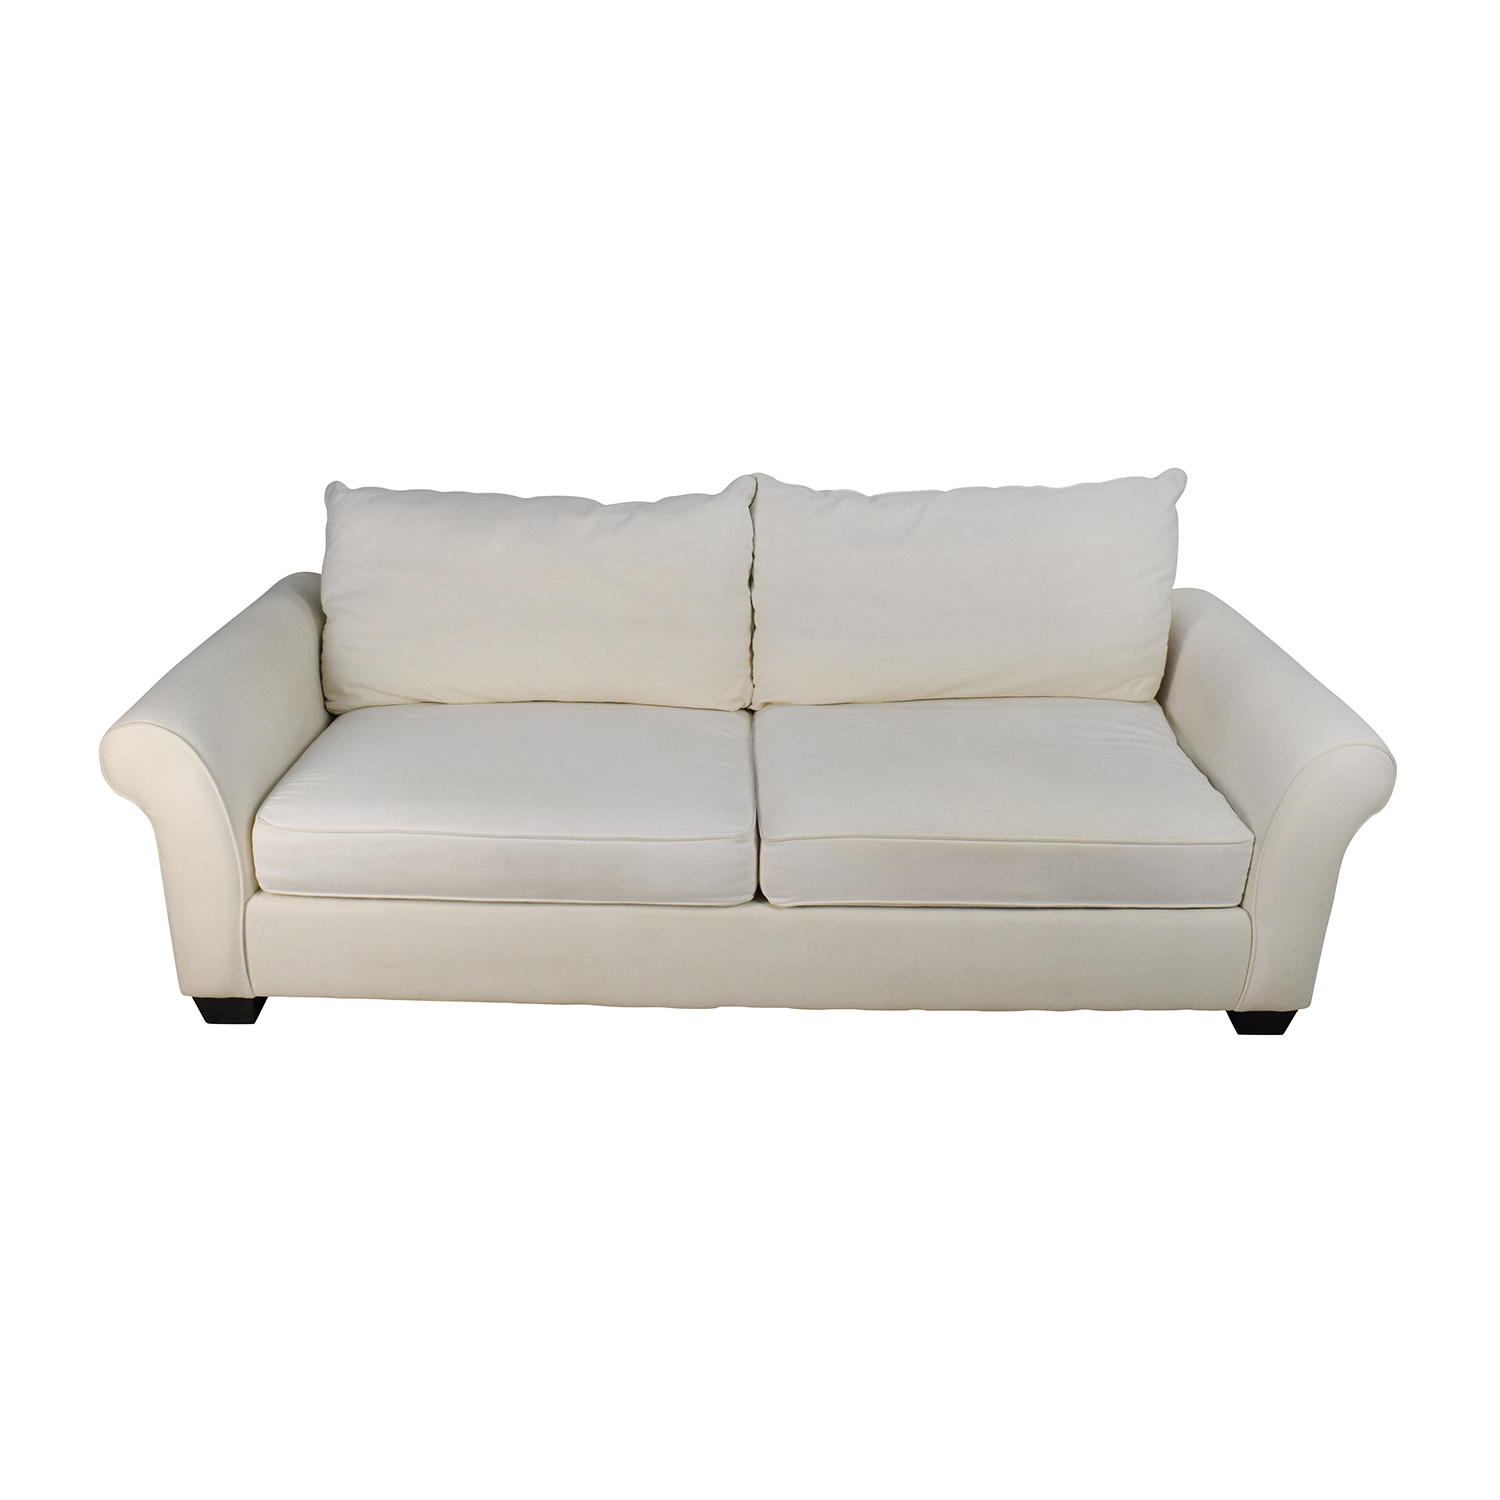 Beautiful Pottery Barn Couch Reviews